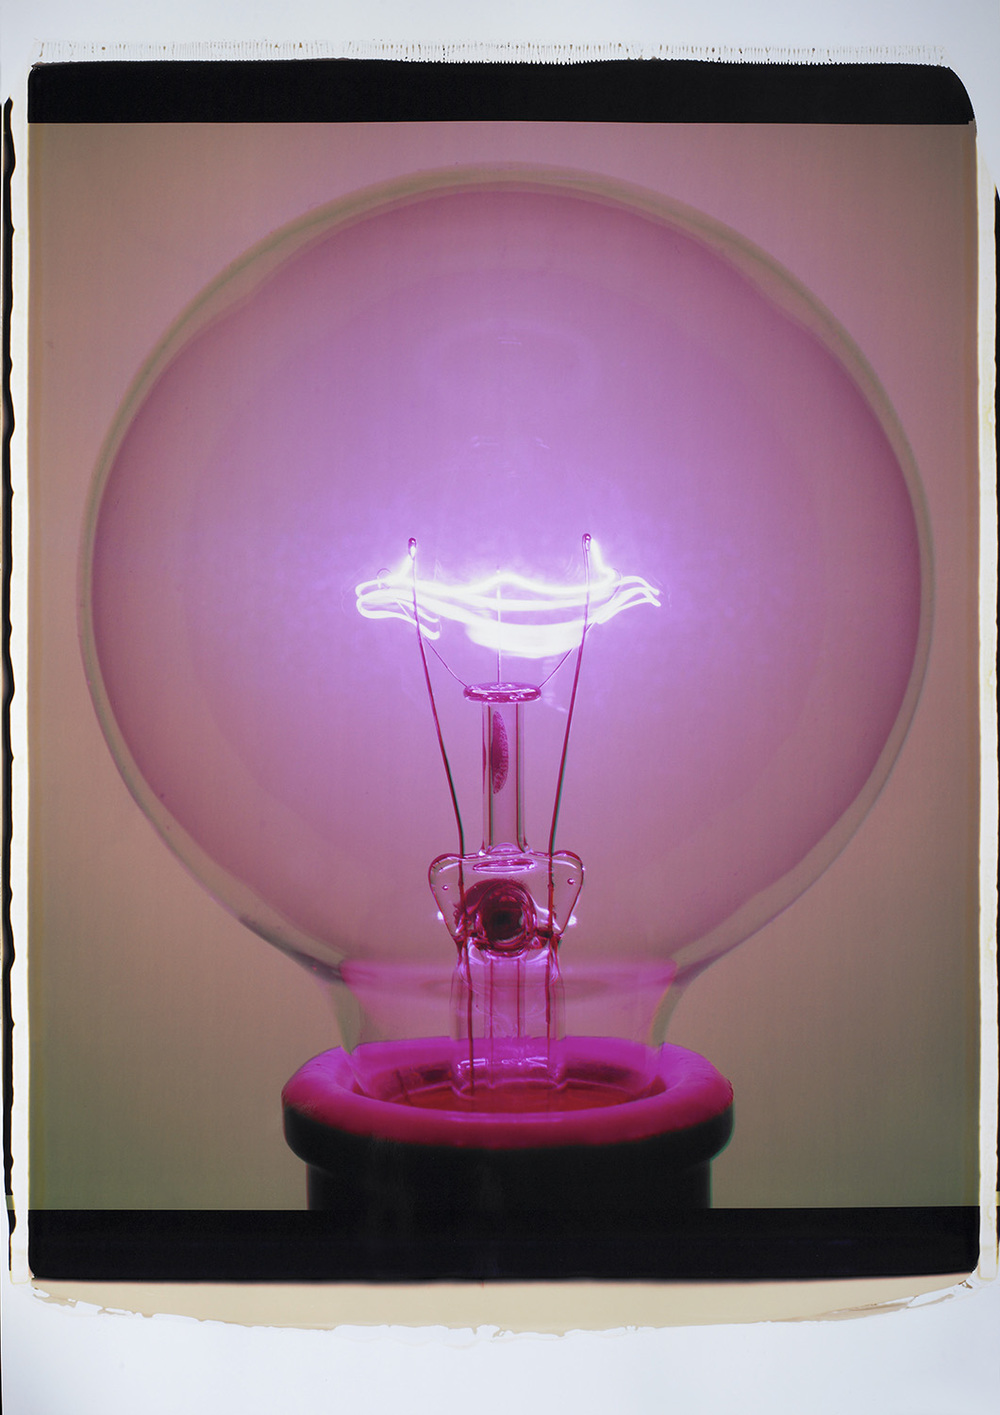 """Light Bulb 017PPa, 2007 (G6),"" Color Polaroid."